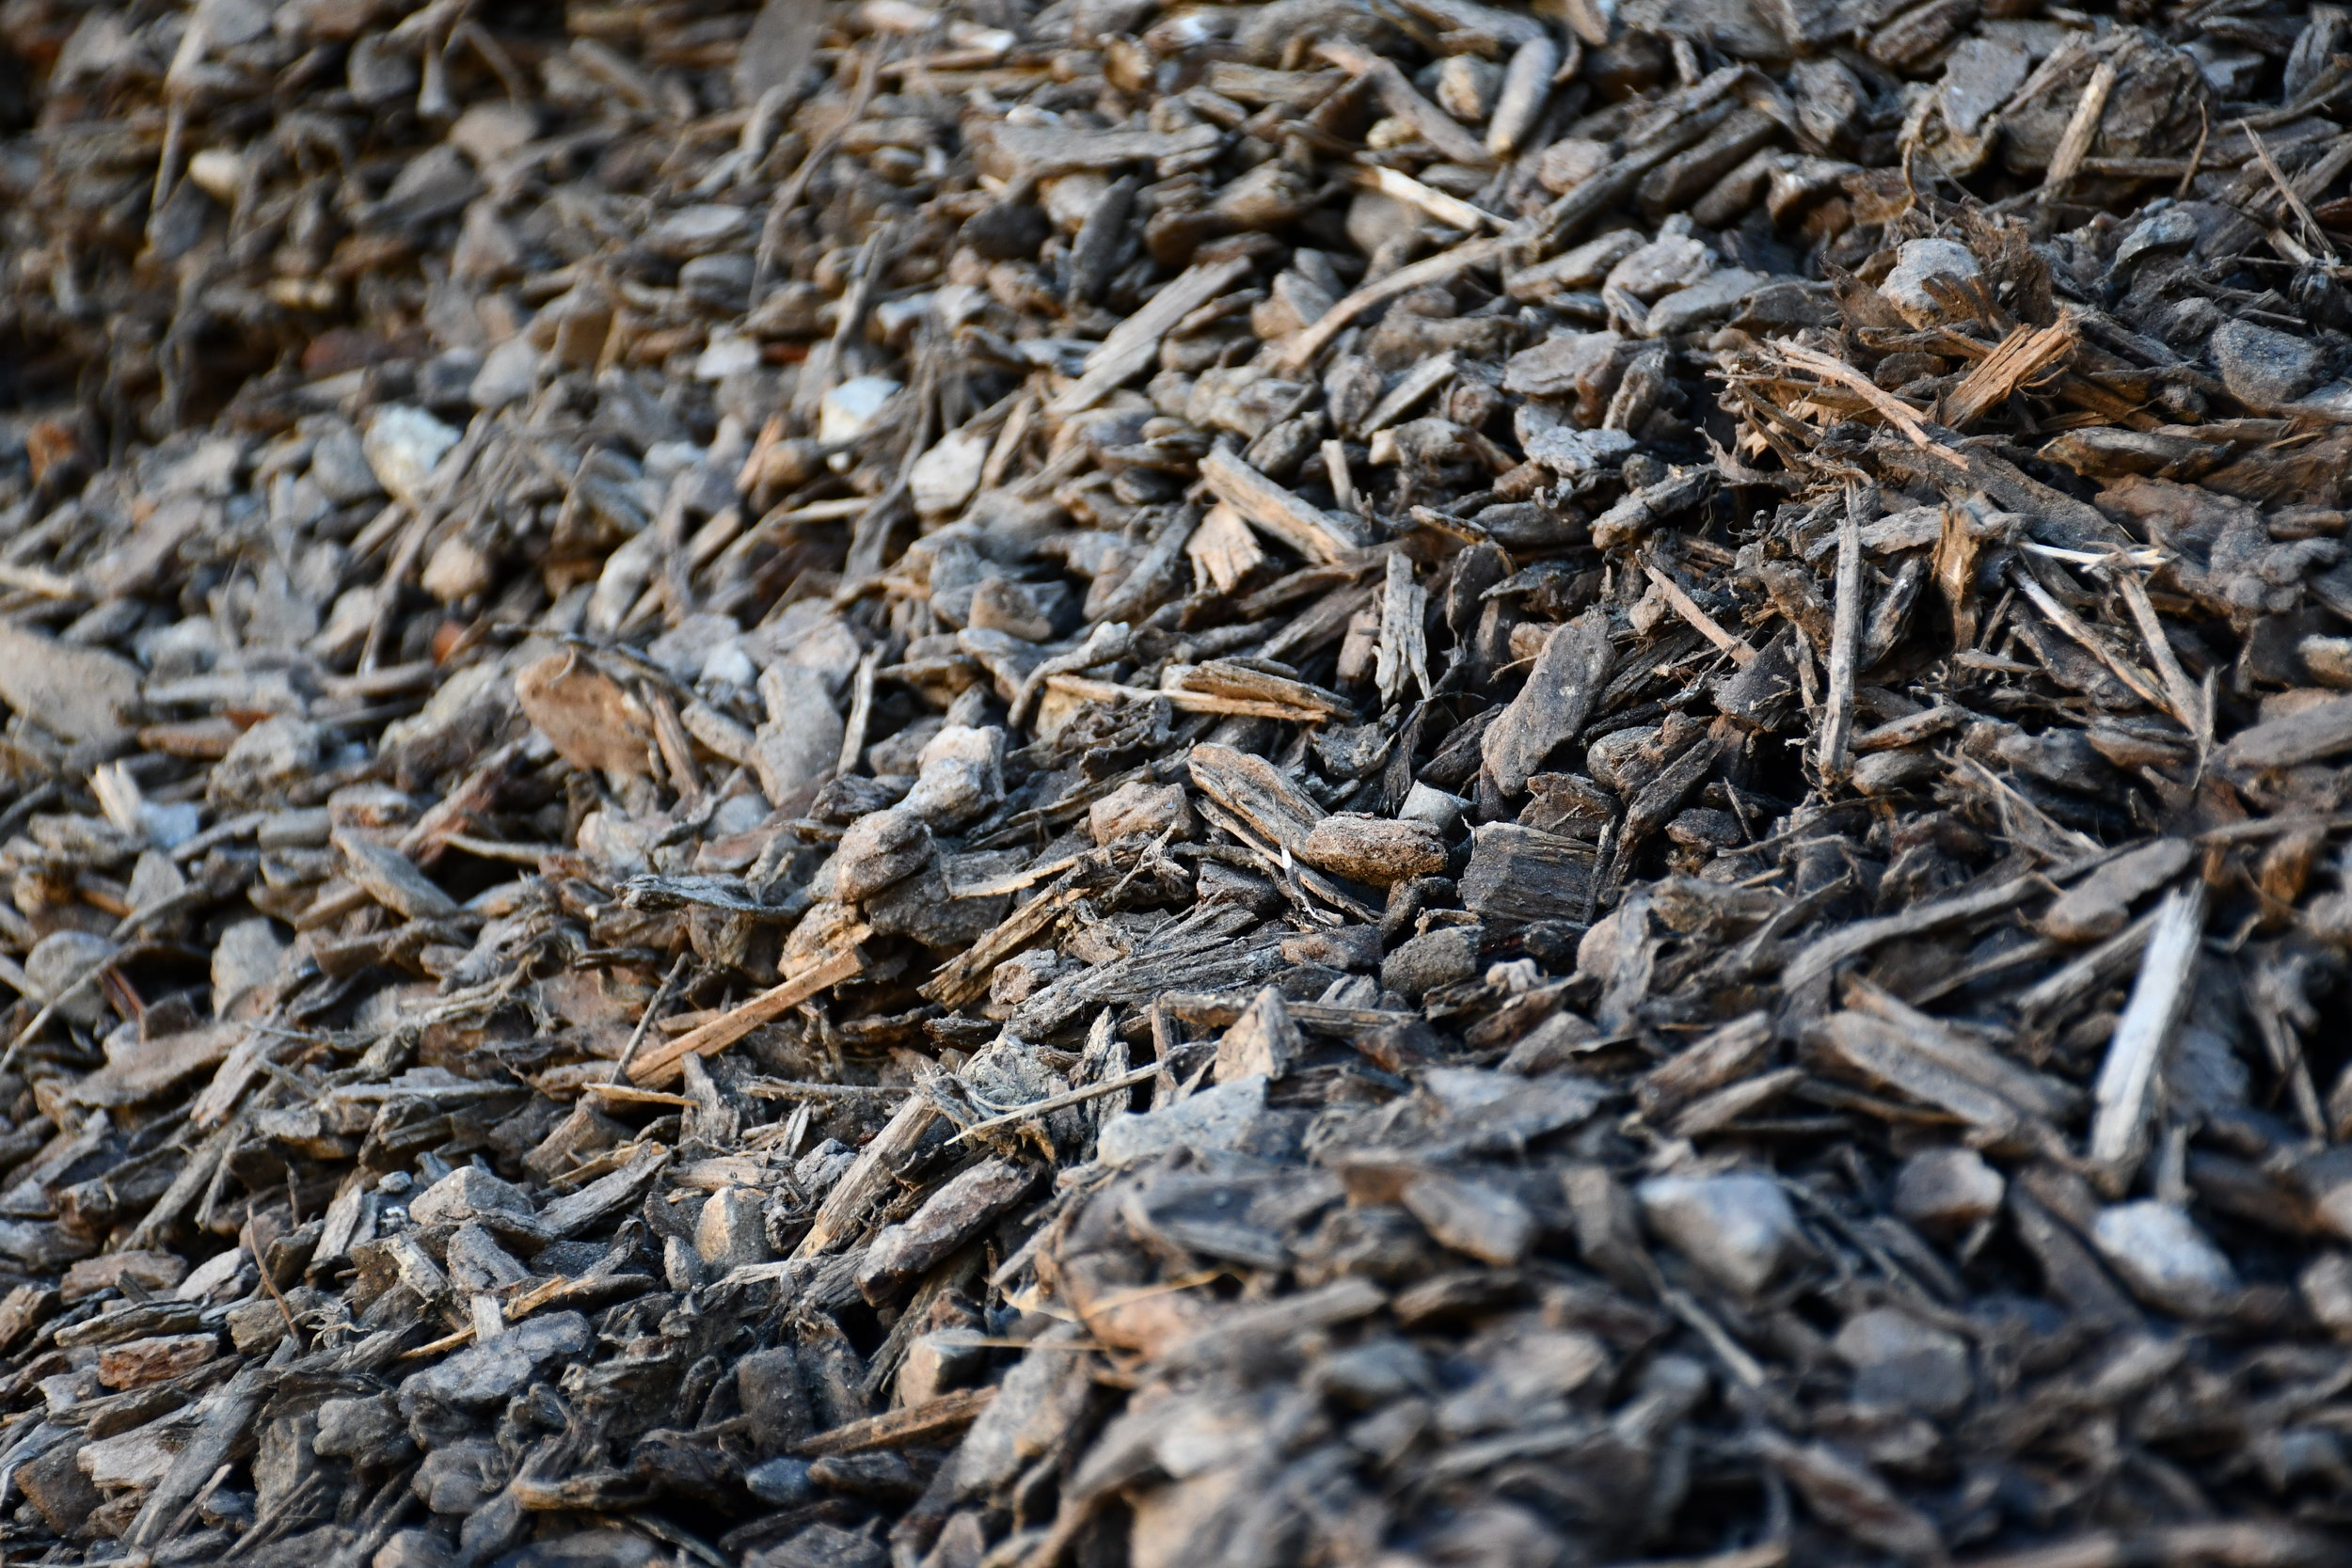 2. BLENMULCH - A 'weed-stopper' mix of bark and cambium to provide a natural decorative look as well as an effective mulch to gardens and other planted areas. Our bark mulch is specially screened or sourced to ensure top quality product free from sticks, stones and other foreign objects.Check our bark range here!